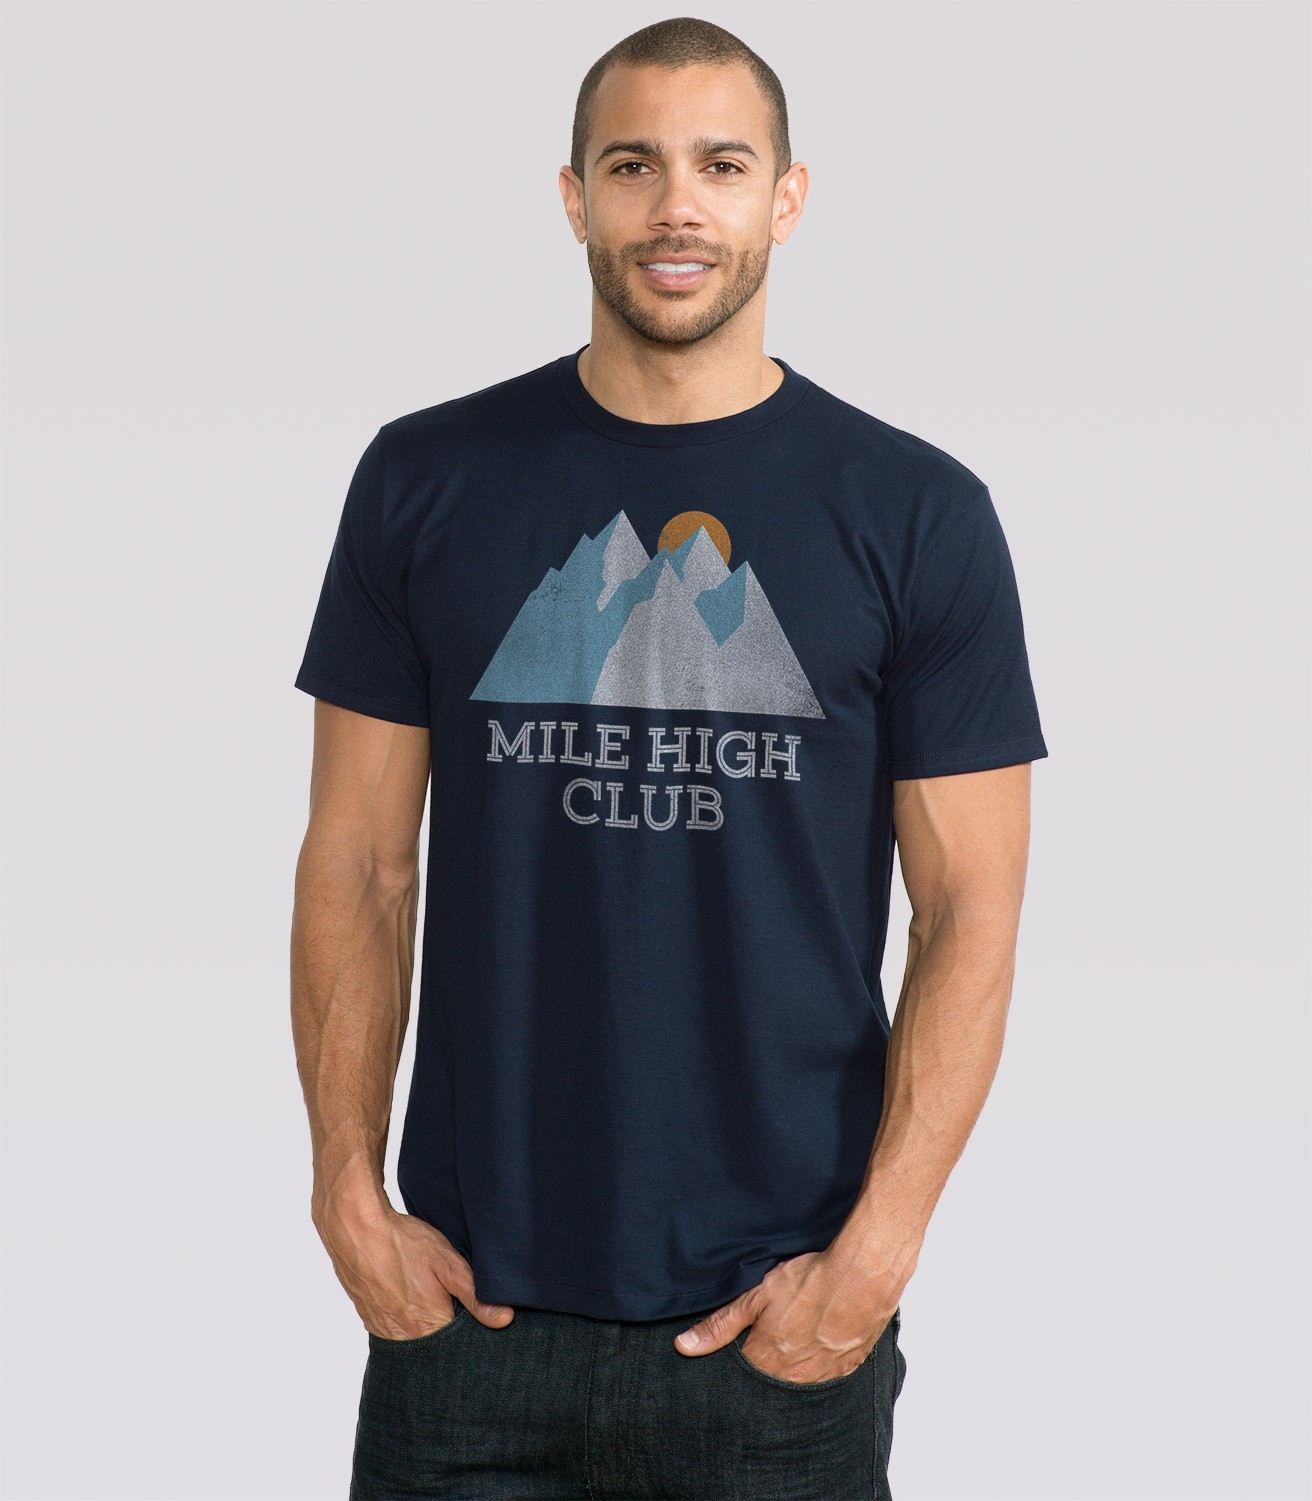 Mile High Club Men's T-Shirt